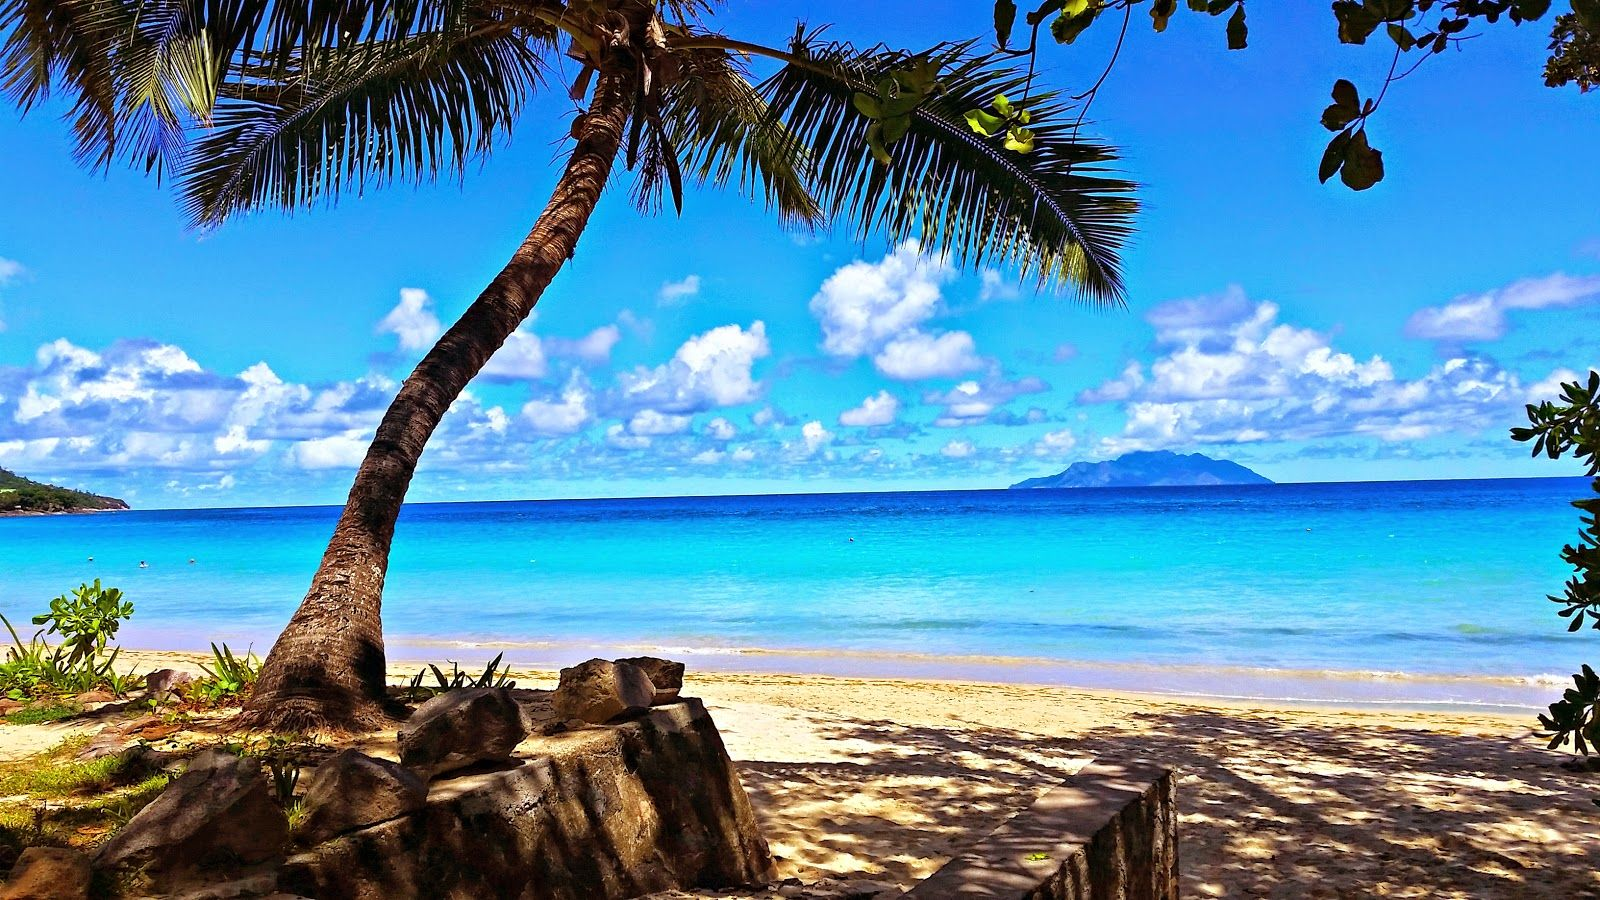 Image for Seychelles Beach Wallpaper High Quality